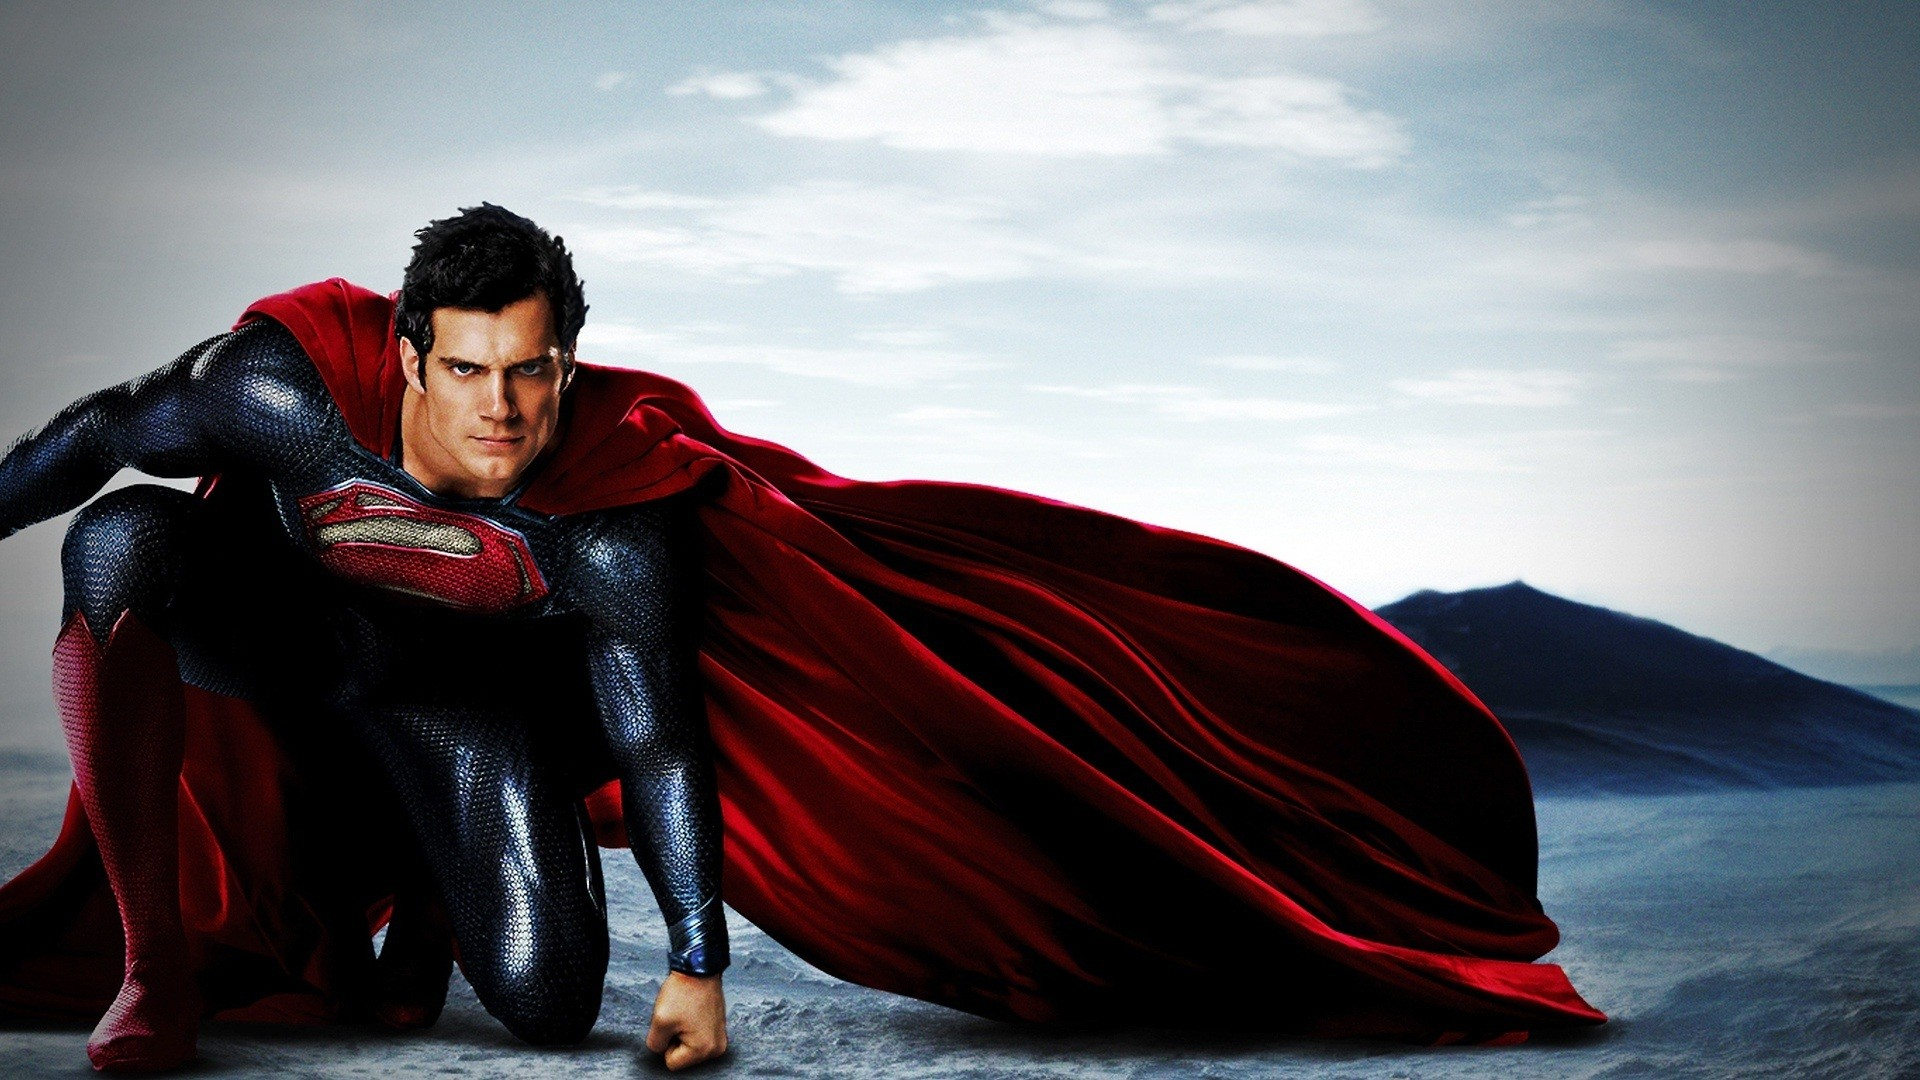 Superman hd wallpapers 74 images 1920x1080 superman hd wallpapers free download voltagebd Image collections